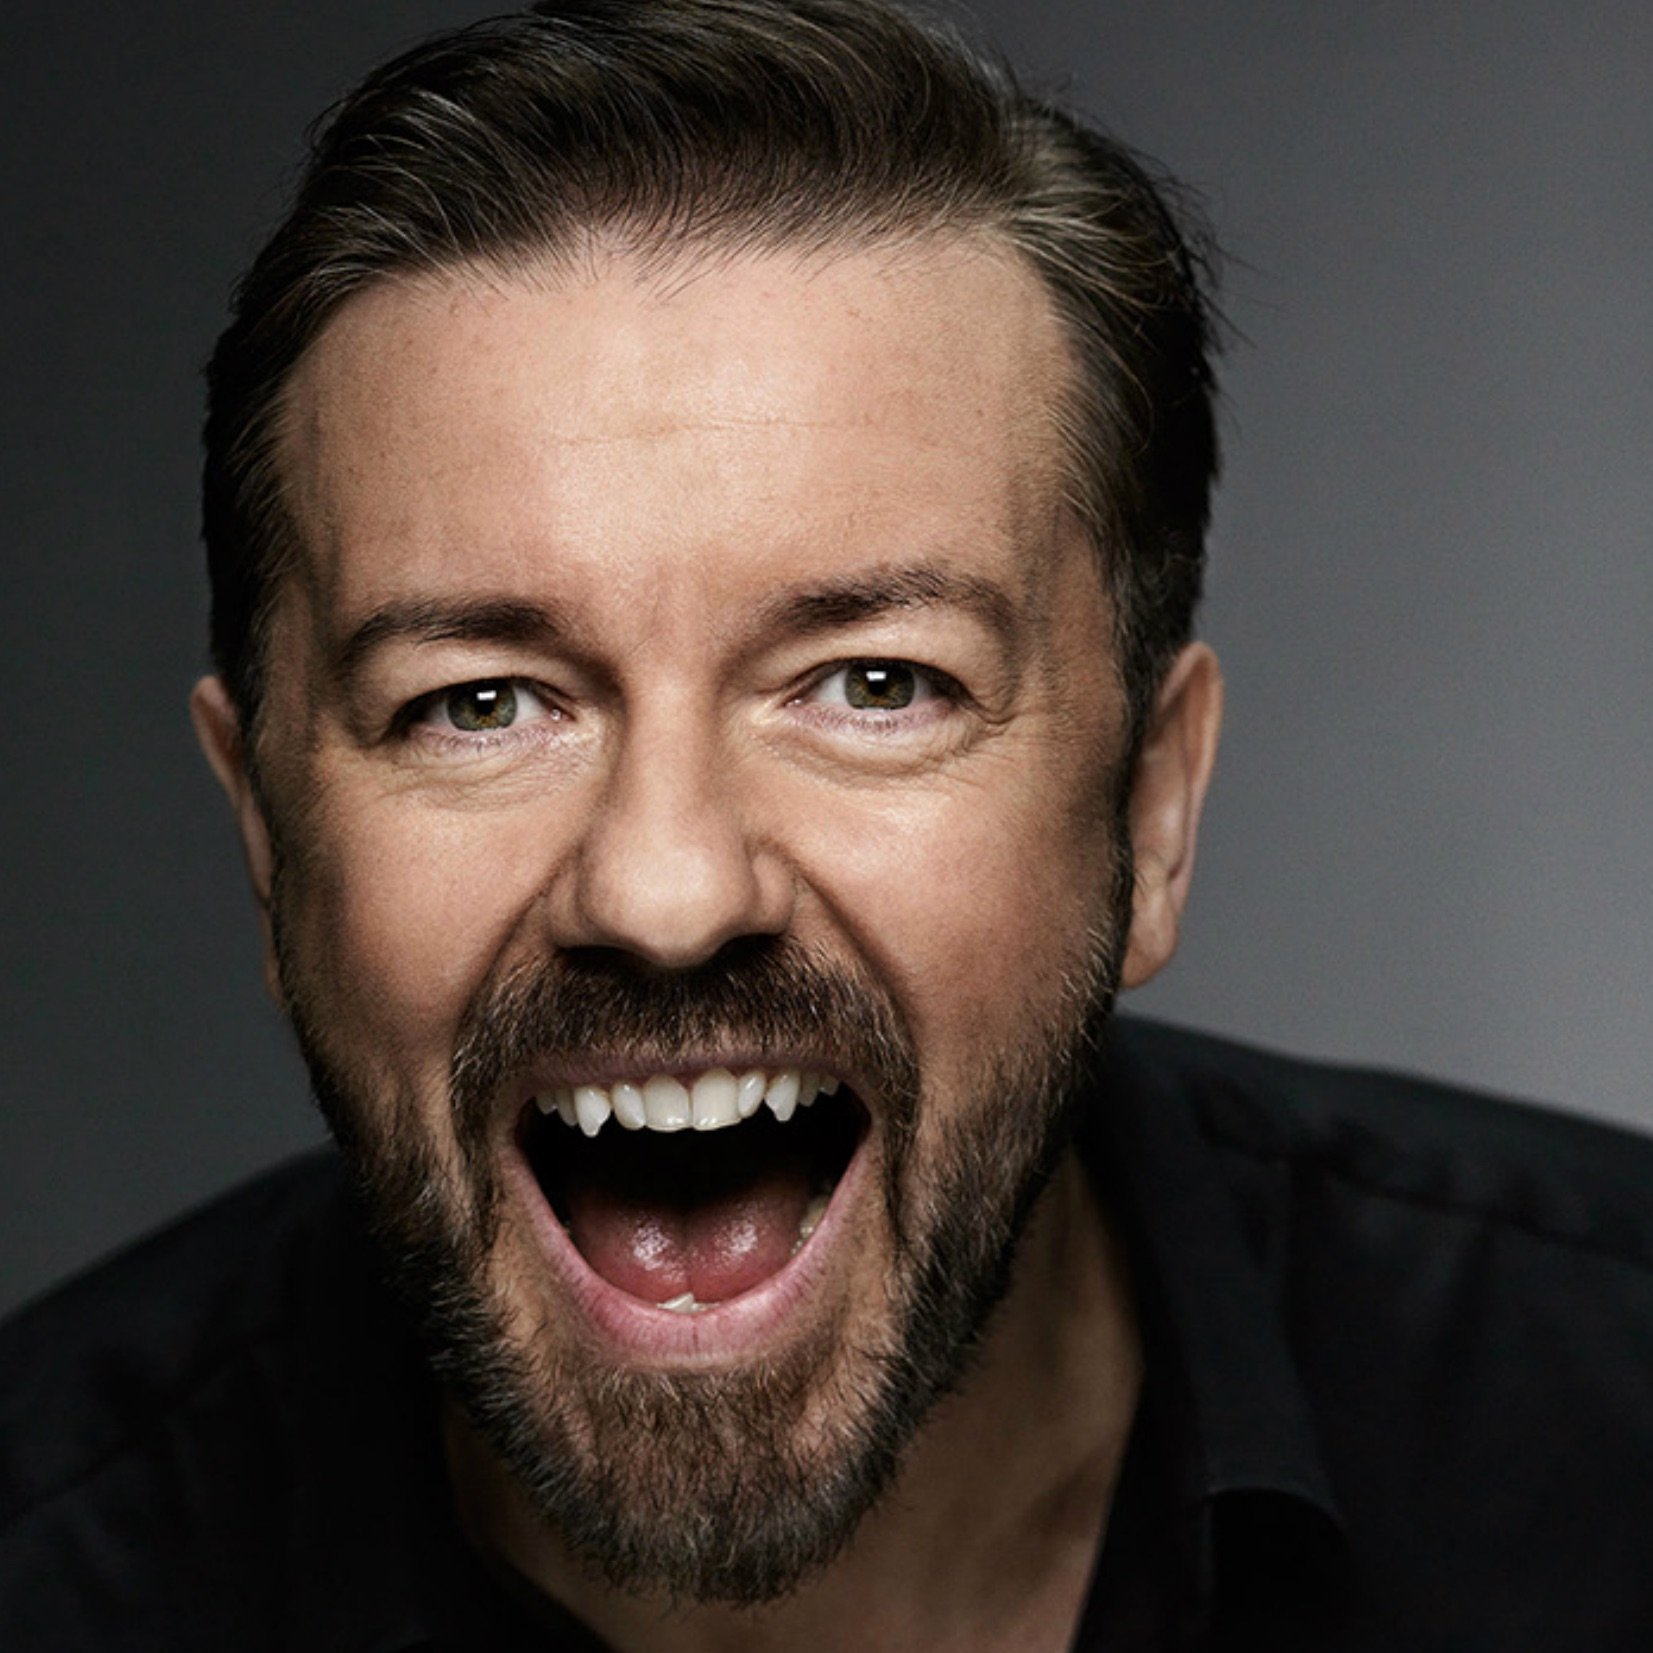 ricky gervais stand upricky gervais show, ricky gervais stand up, ricky gervais twitter, ricky gervais golden globes, ricky gervais tour, ricky gervais jane fallon, ricky gervais почему я атеист, ricky gervais animals, ricky gervais кинопоиск, ricky gervais height, ricky gervais youtube, ricky gervais net worth, ricky gervais wikipedia, ricky gervais golden globes 2017, ricky gervais laugh, ricky gervais noah, ricky gervais stockholm, ricky gervais на русском, ricky gervais ellen, ricky gervais tour dates